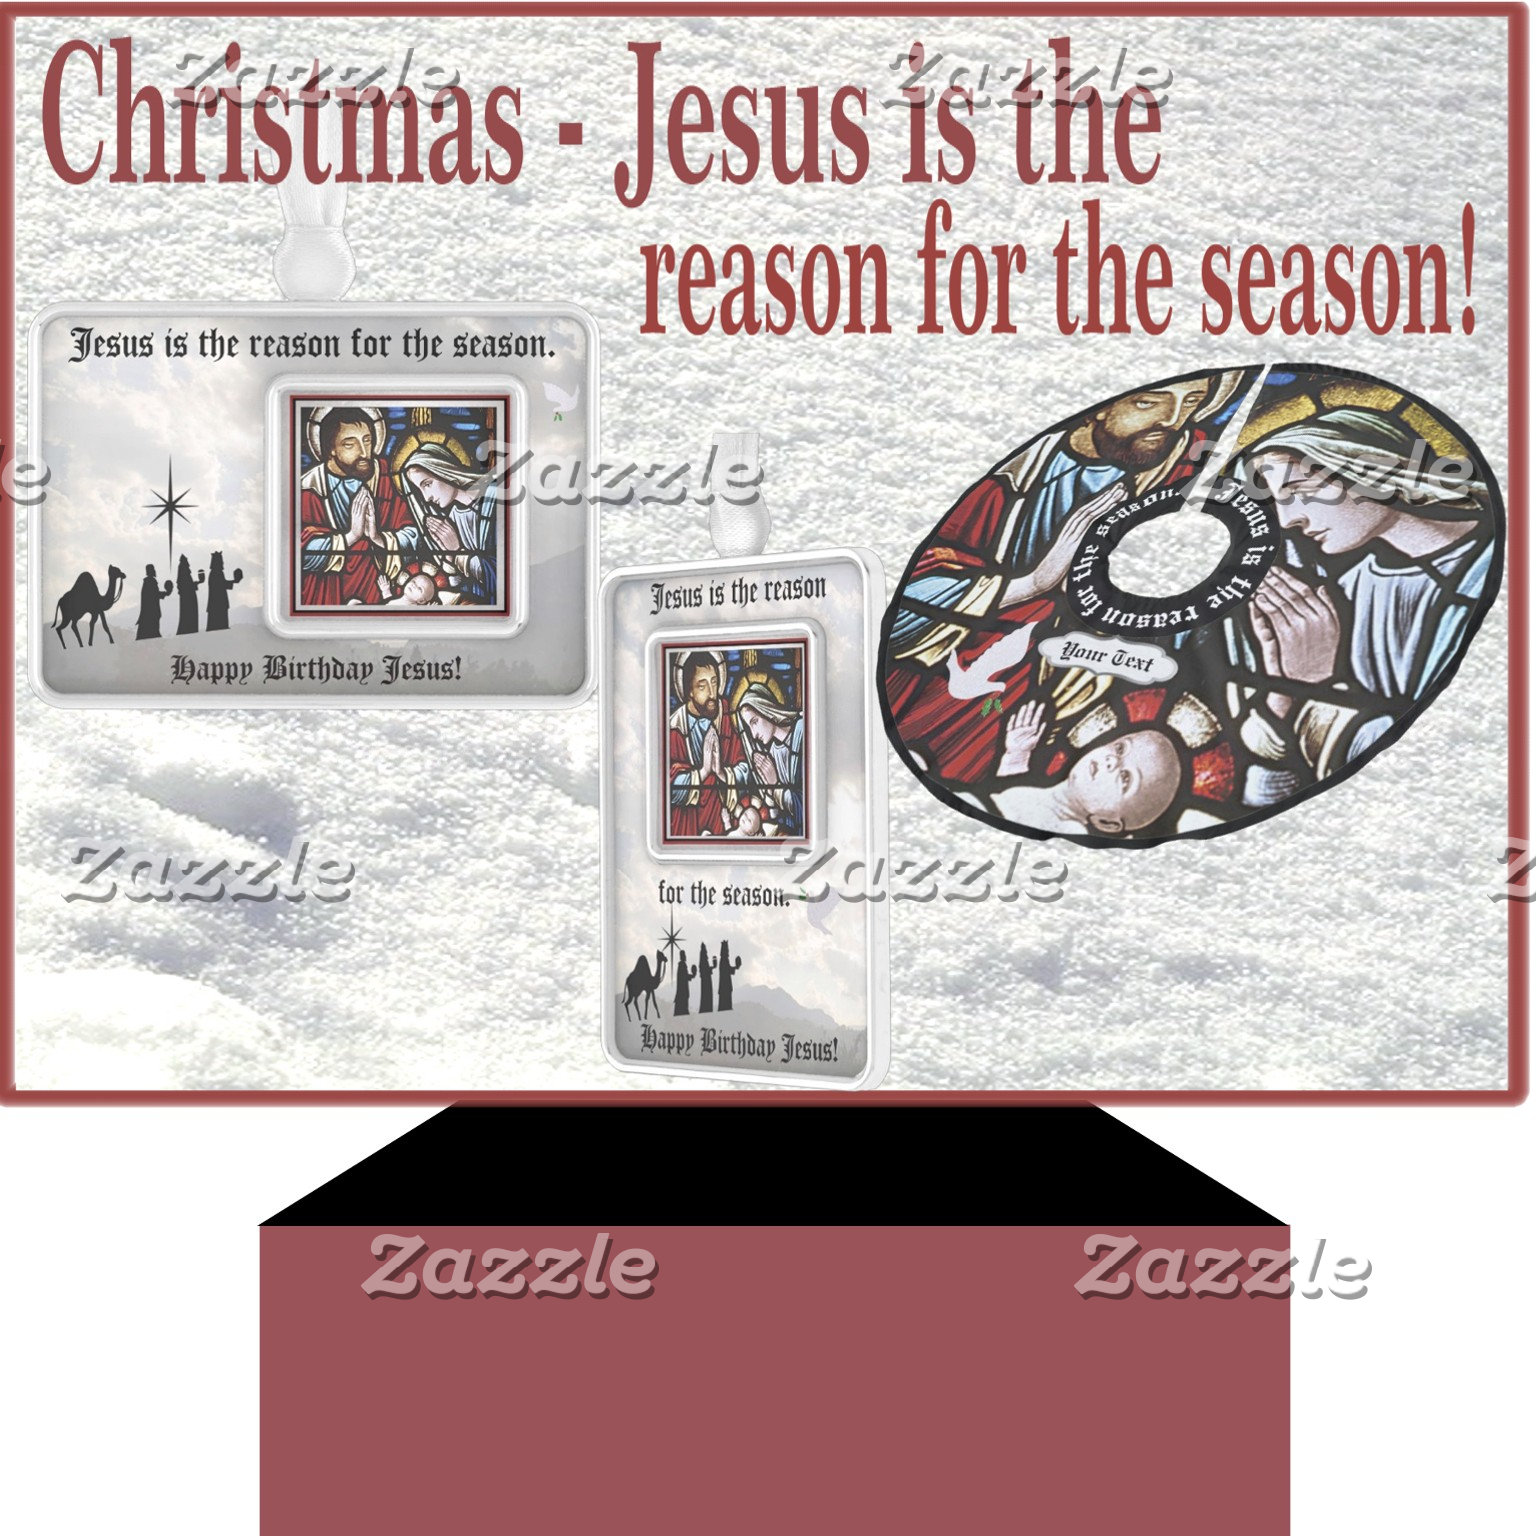 Christmas - Jesus is the Reason for the season!